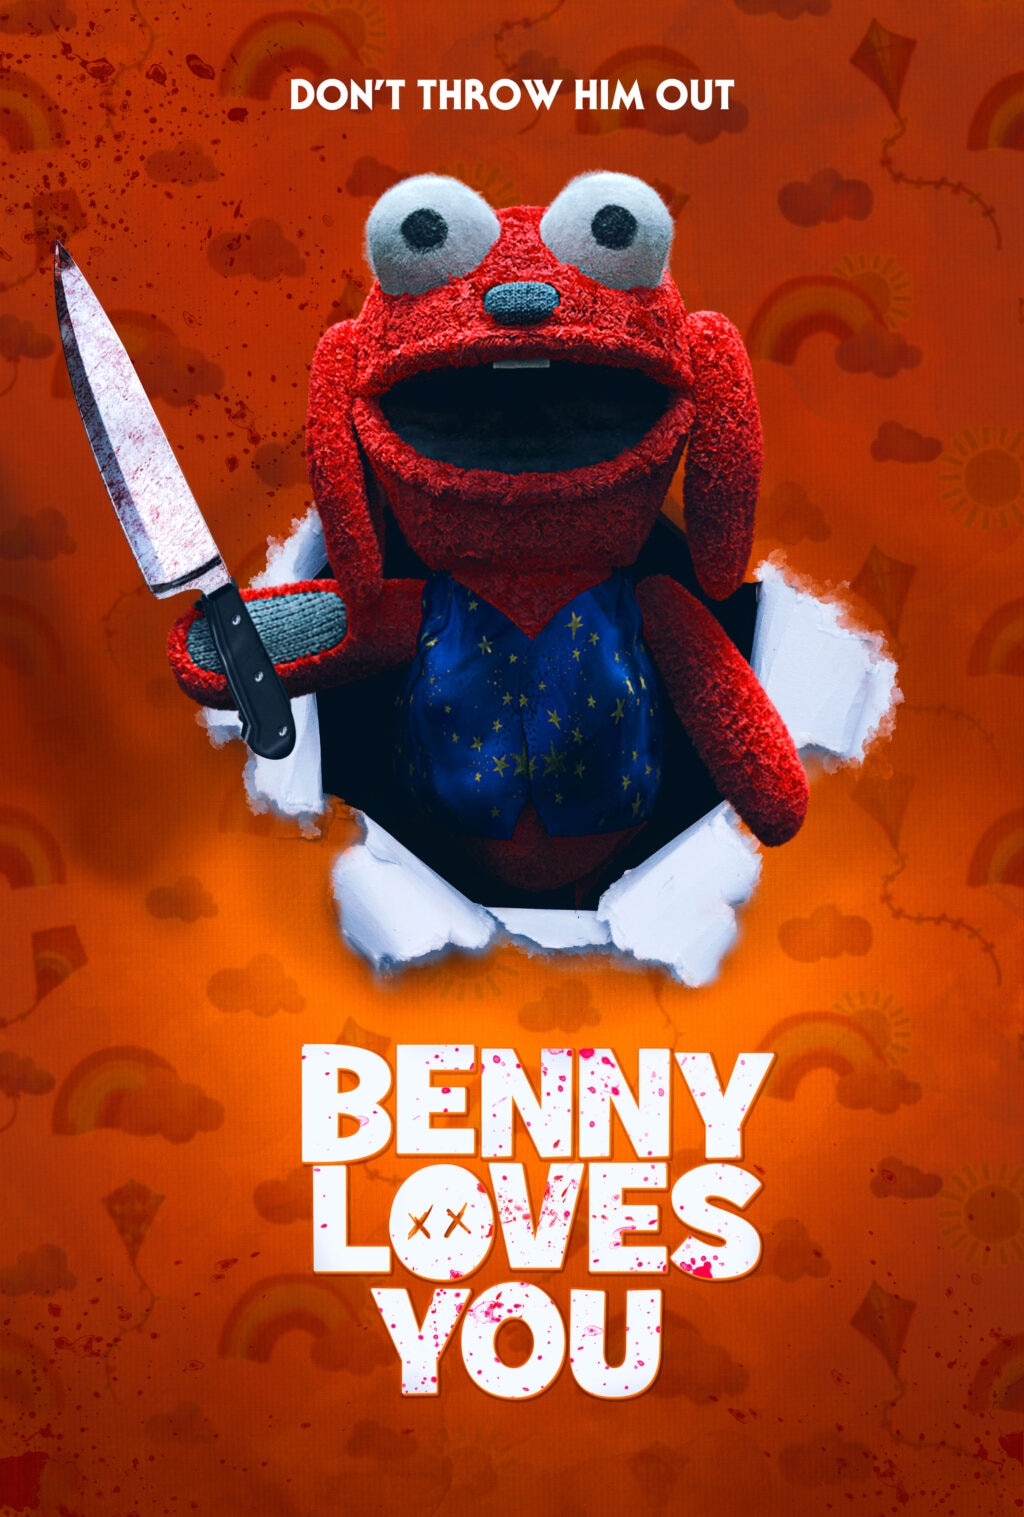 Benny Loves You Final US web 1 1024x1517 - BENNY LOVES YOU Director Karl Holt on His Killer Toy Movie With a Big Heart [Video]